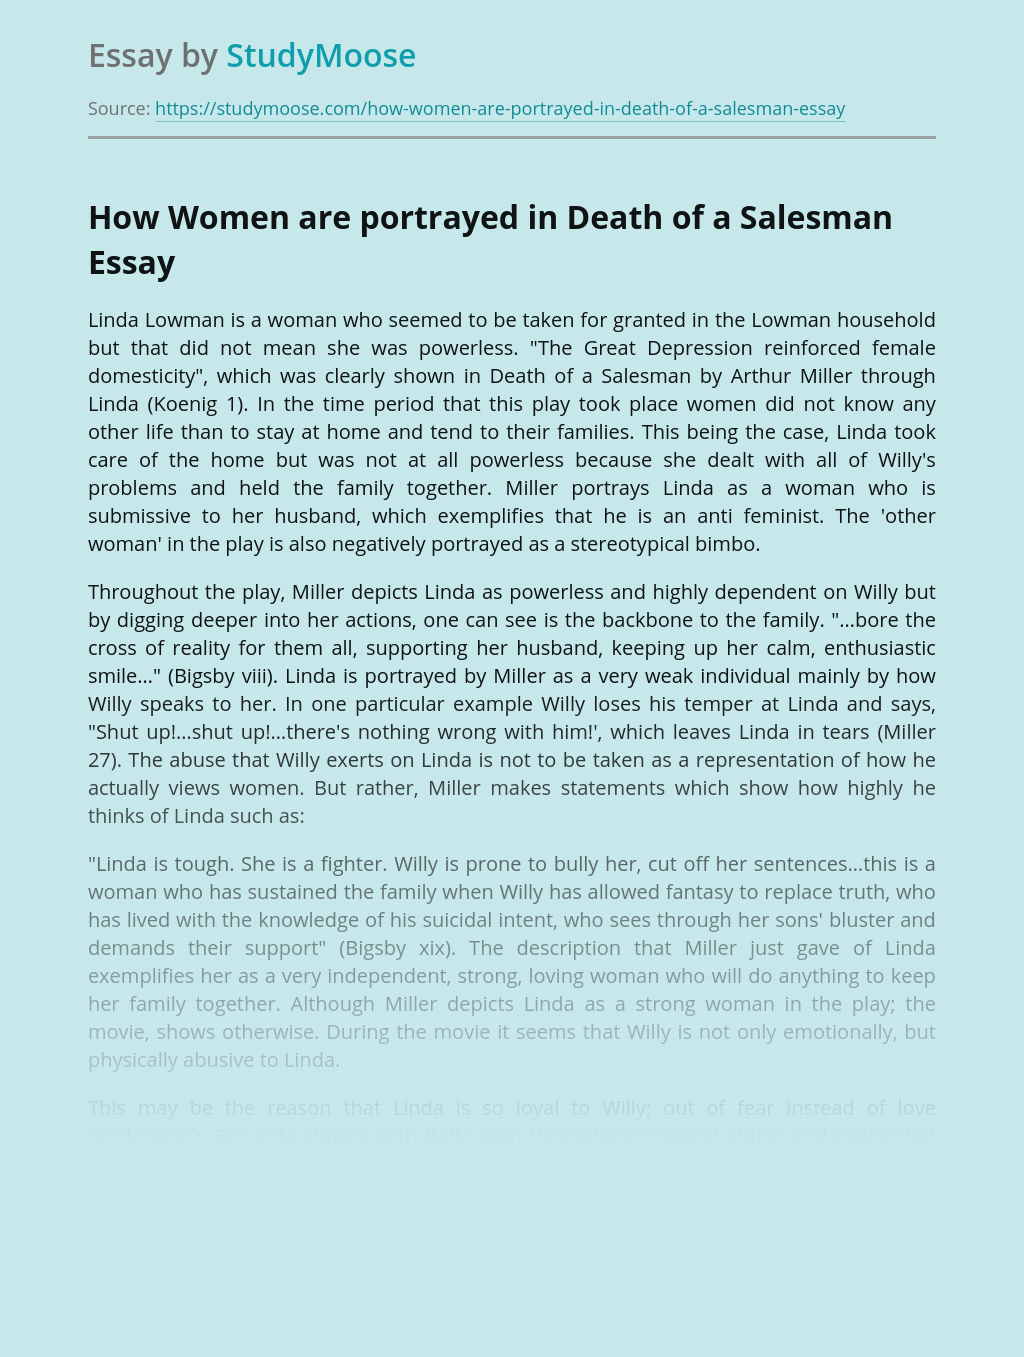 How Women are portrayed in Death of a Salesman